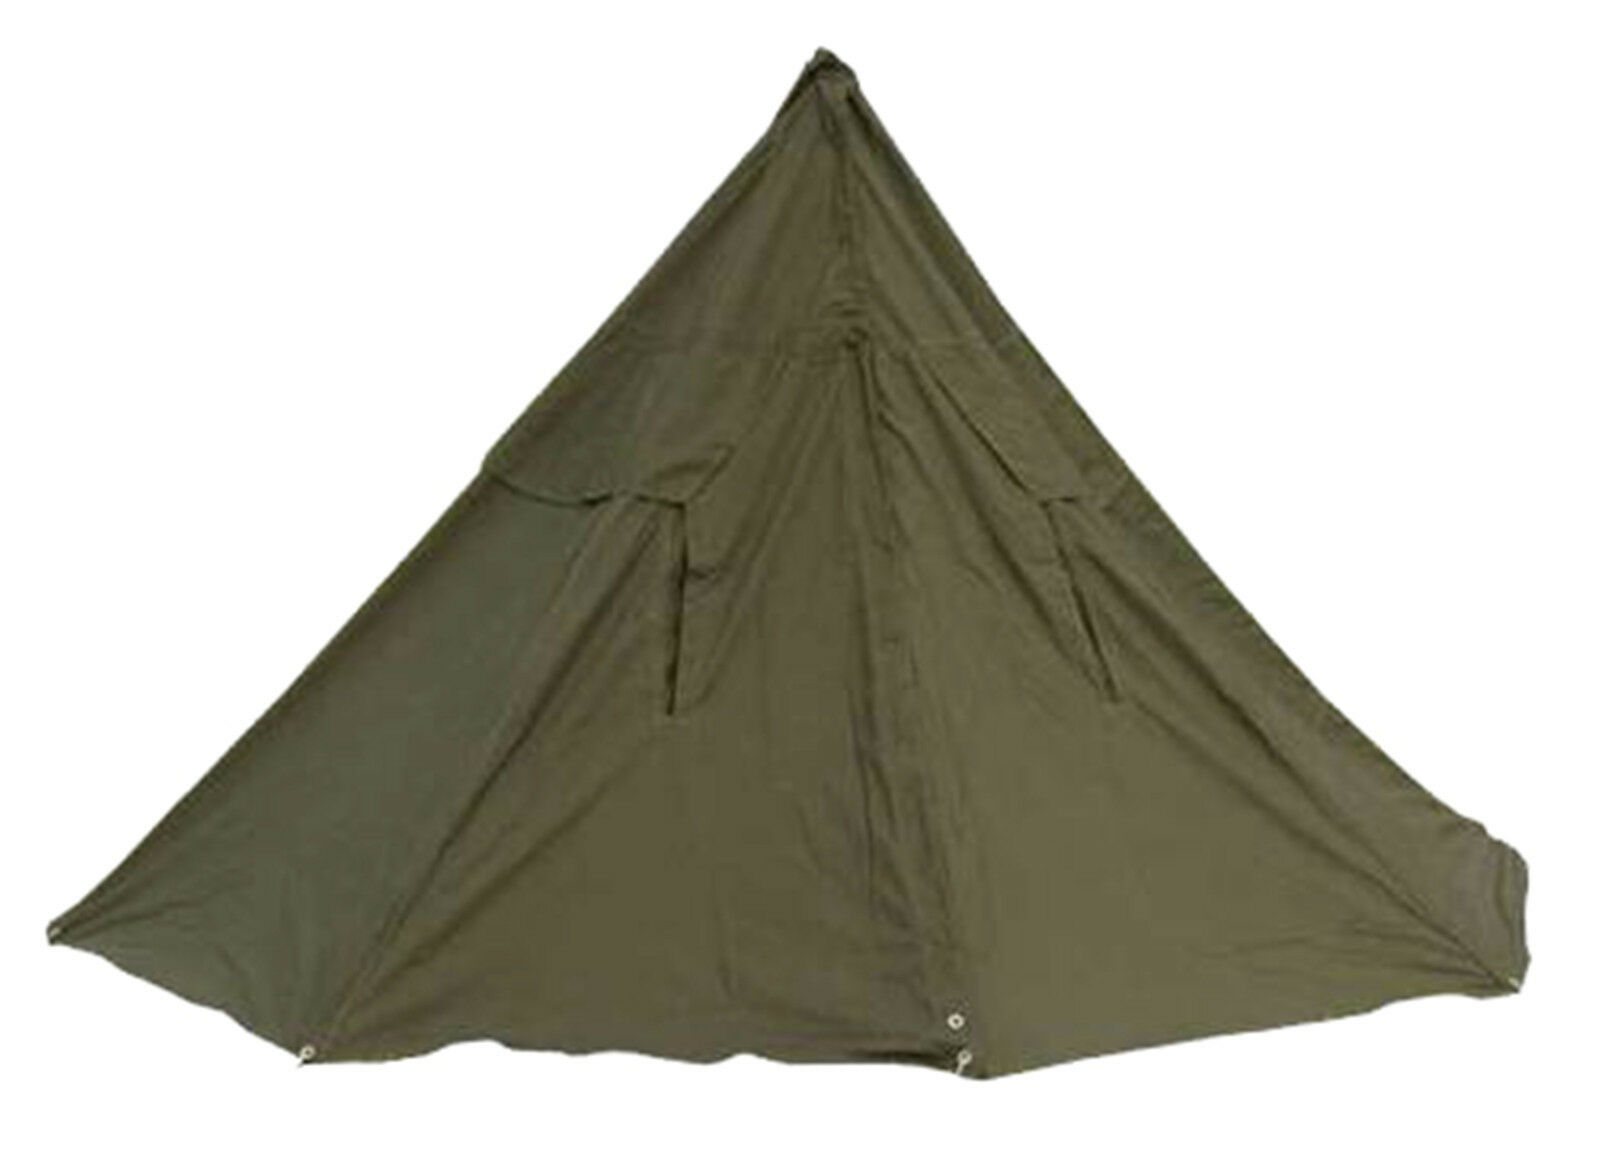 Polish Army Cotton Canvas Bell 2 2 2 Men Olive Drab Tent Ponchos with Pegs & Poles ae8349